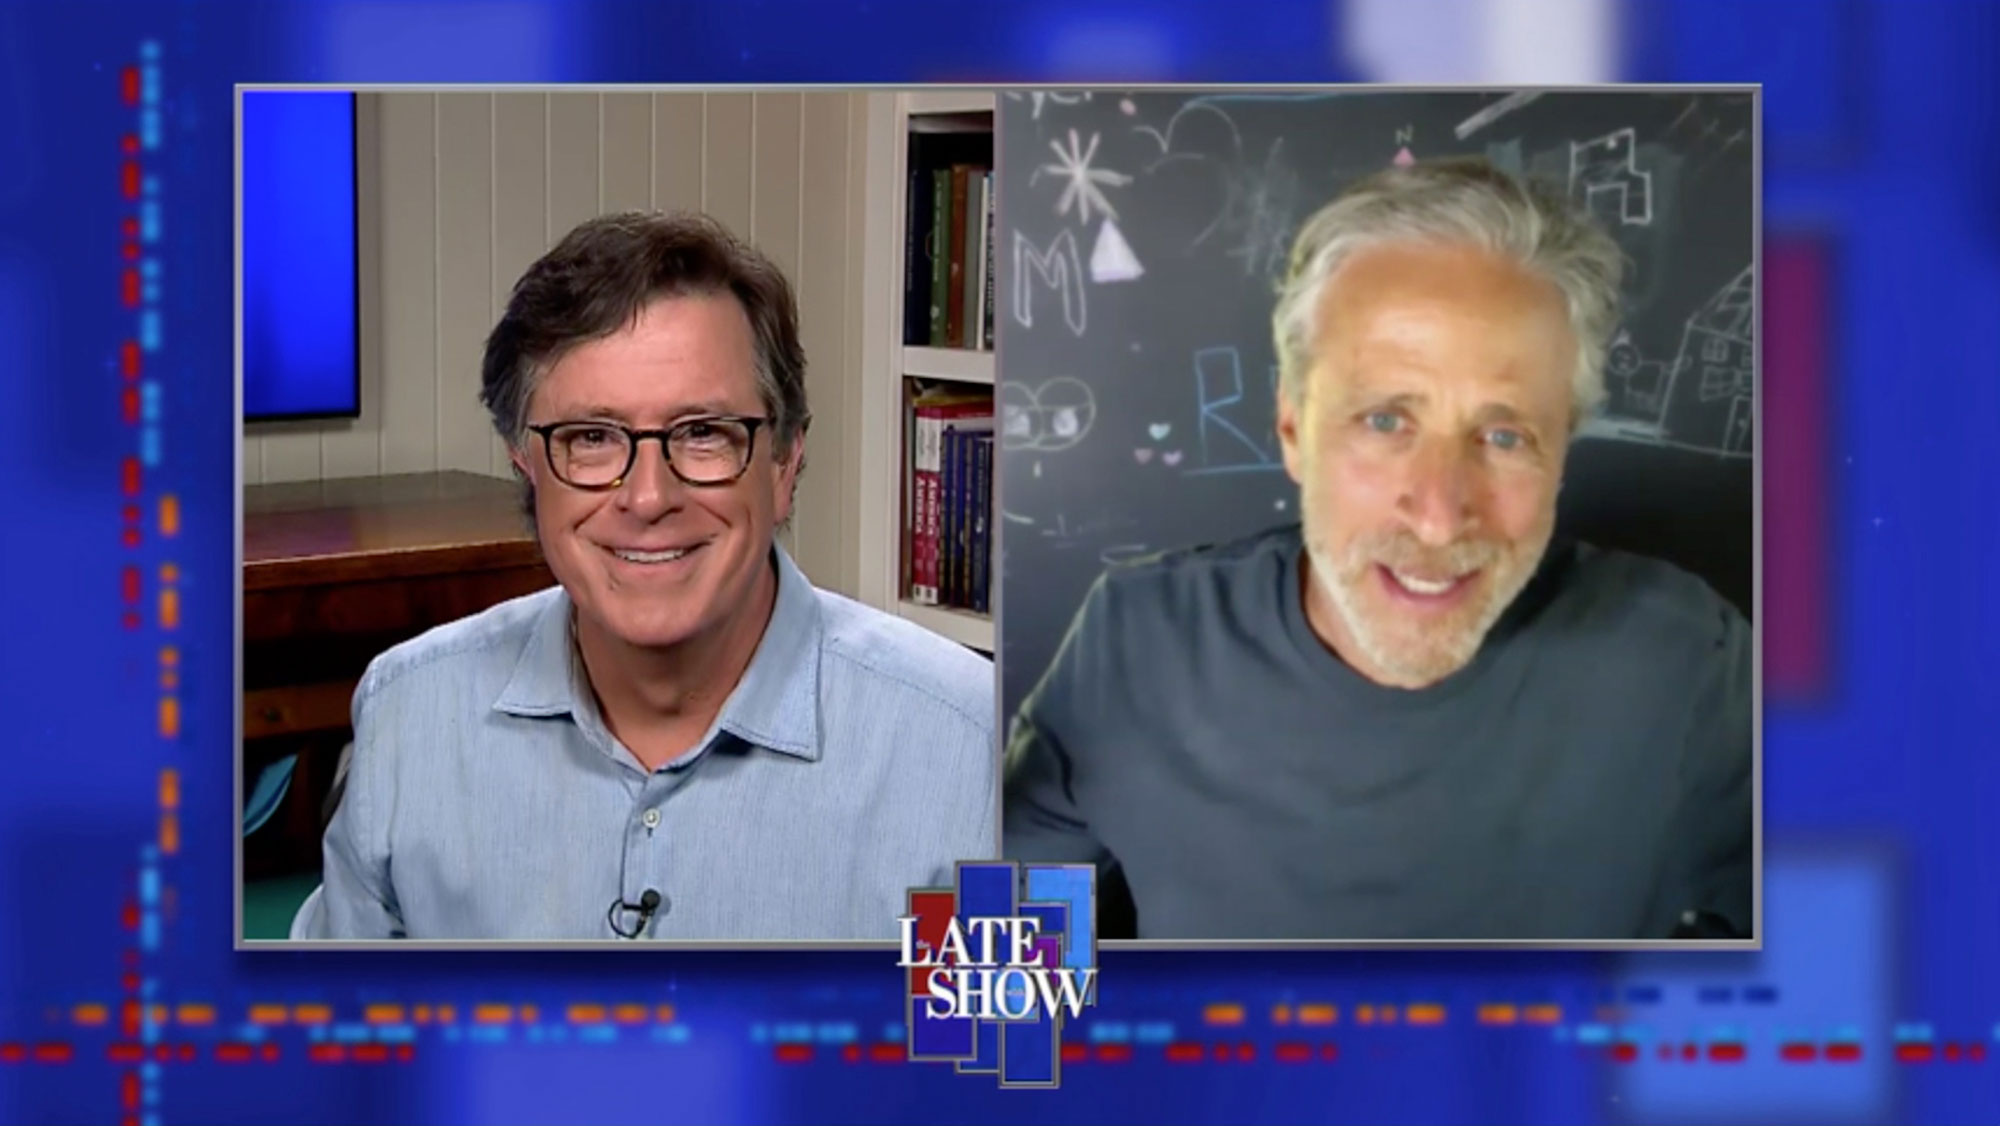 The Late Show with Stephen Colbert and Jon Stewart